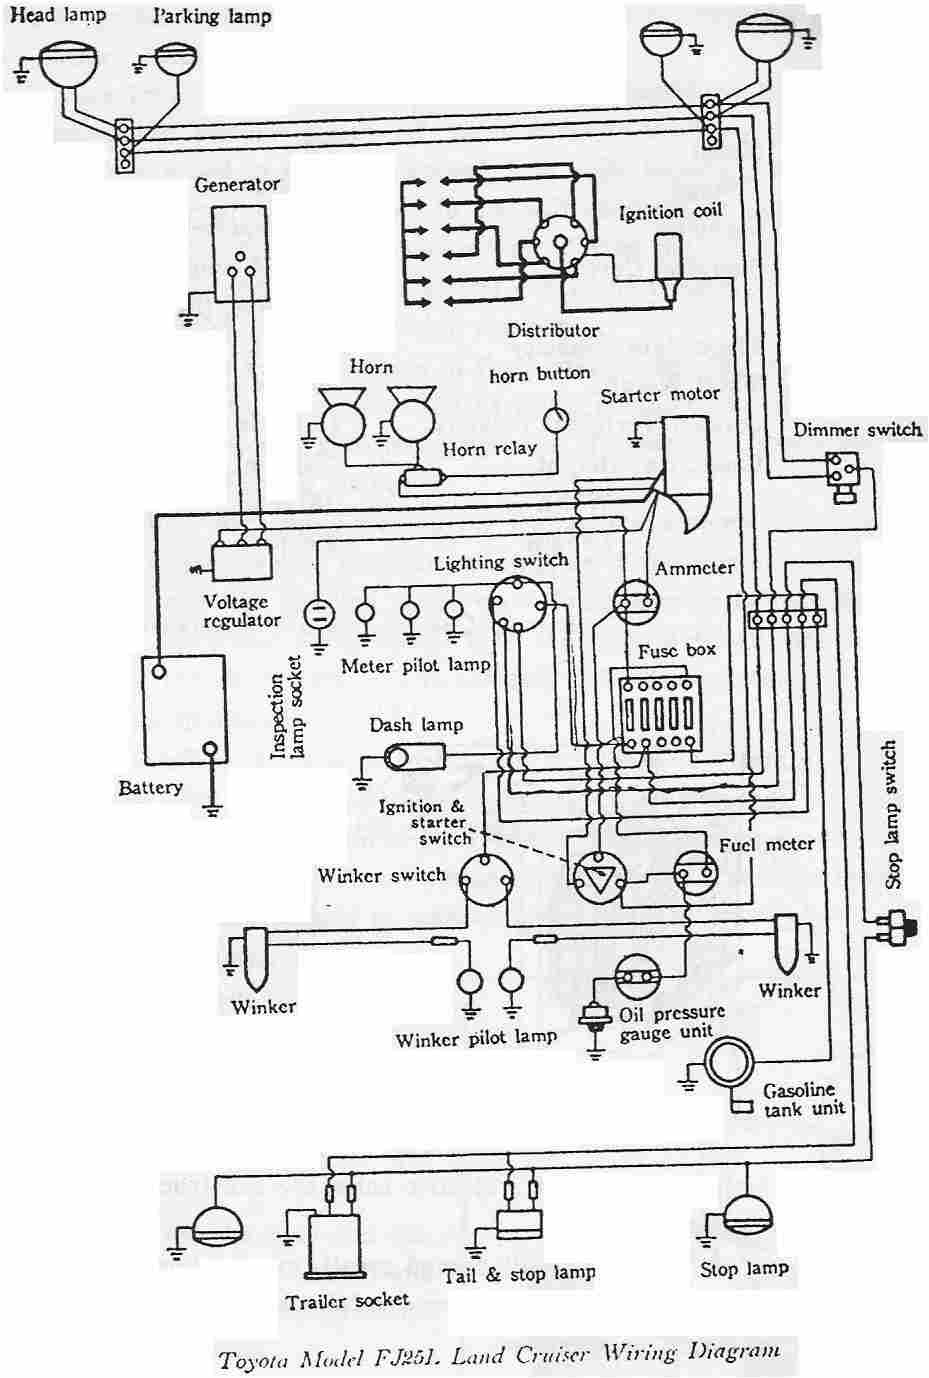 Toyota+Land+Cruiser+FJ25+Electrical+Wiring+Diagram toyota land cruiser fj25 electrical wiring diagram all about toyota electrical wiring diagram at readyjetset.co